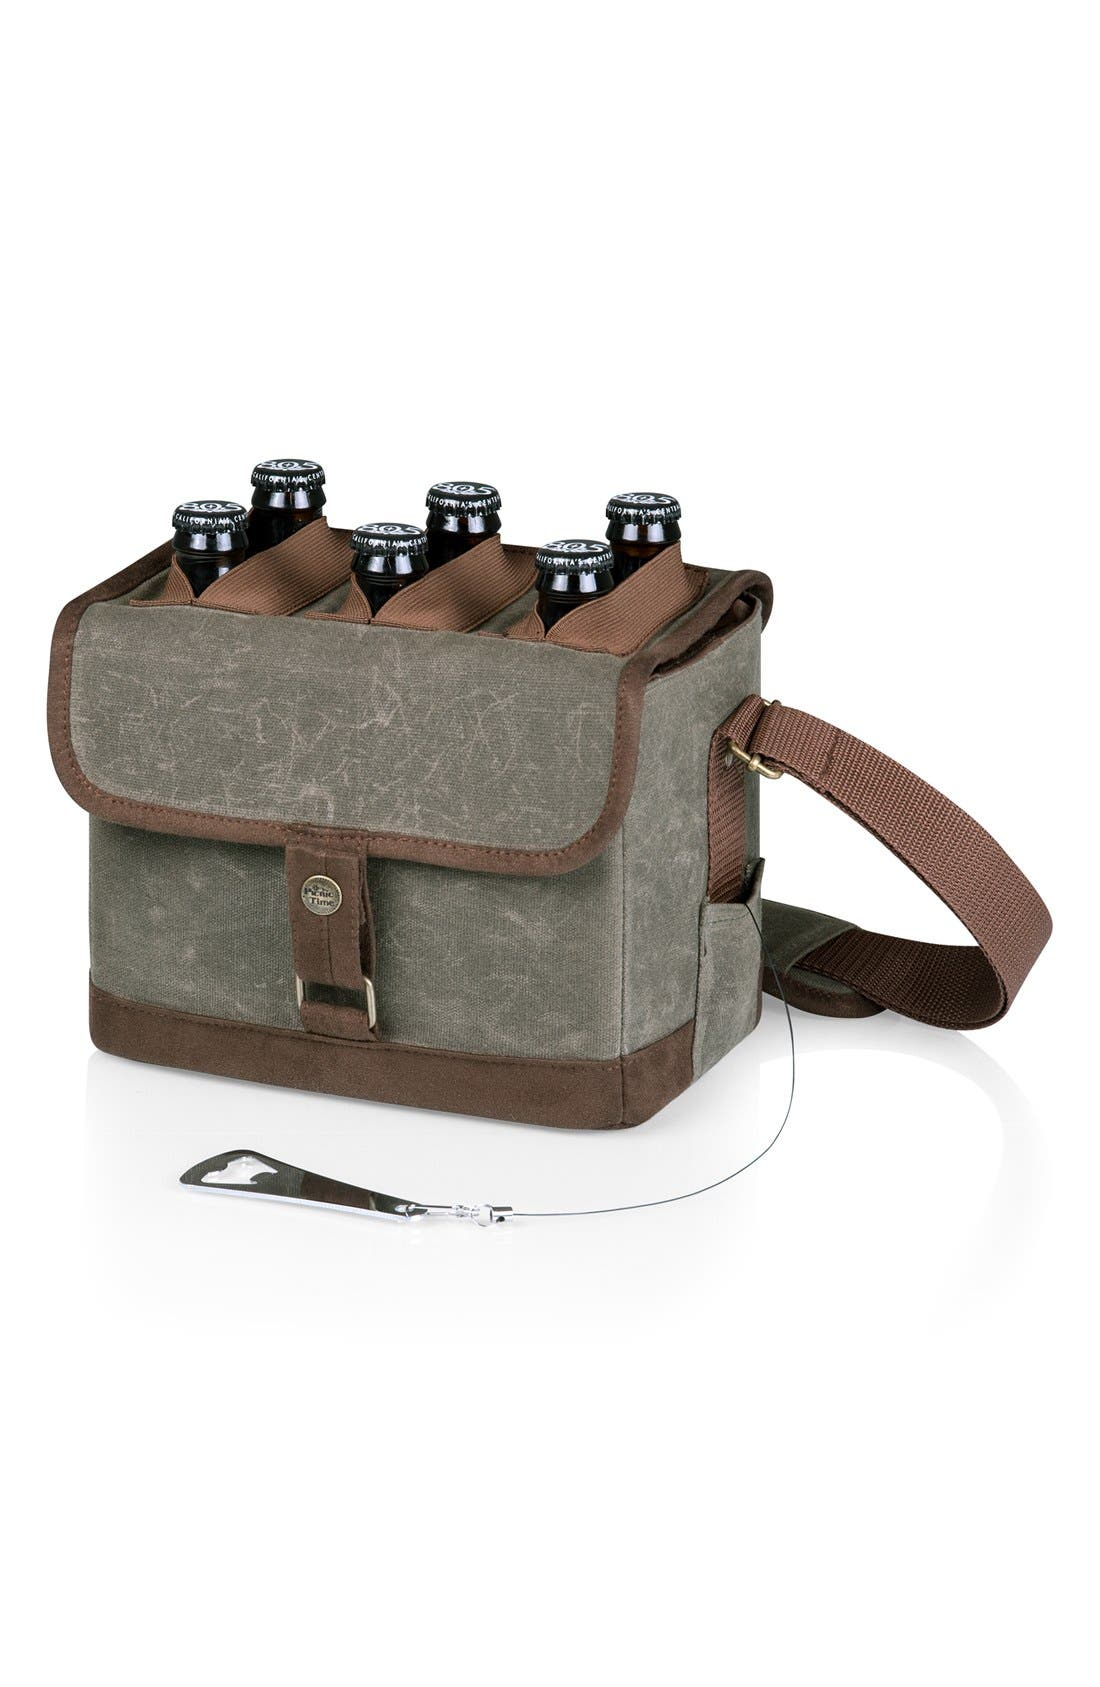 Alternate Image 1 Selected - Picnic Time Six-Pack Insulated Cooler